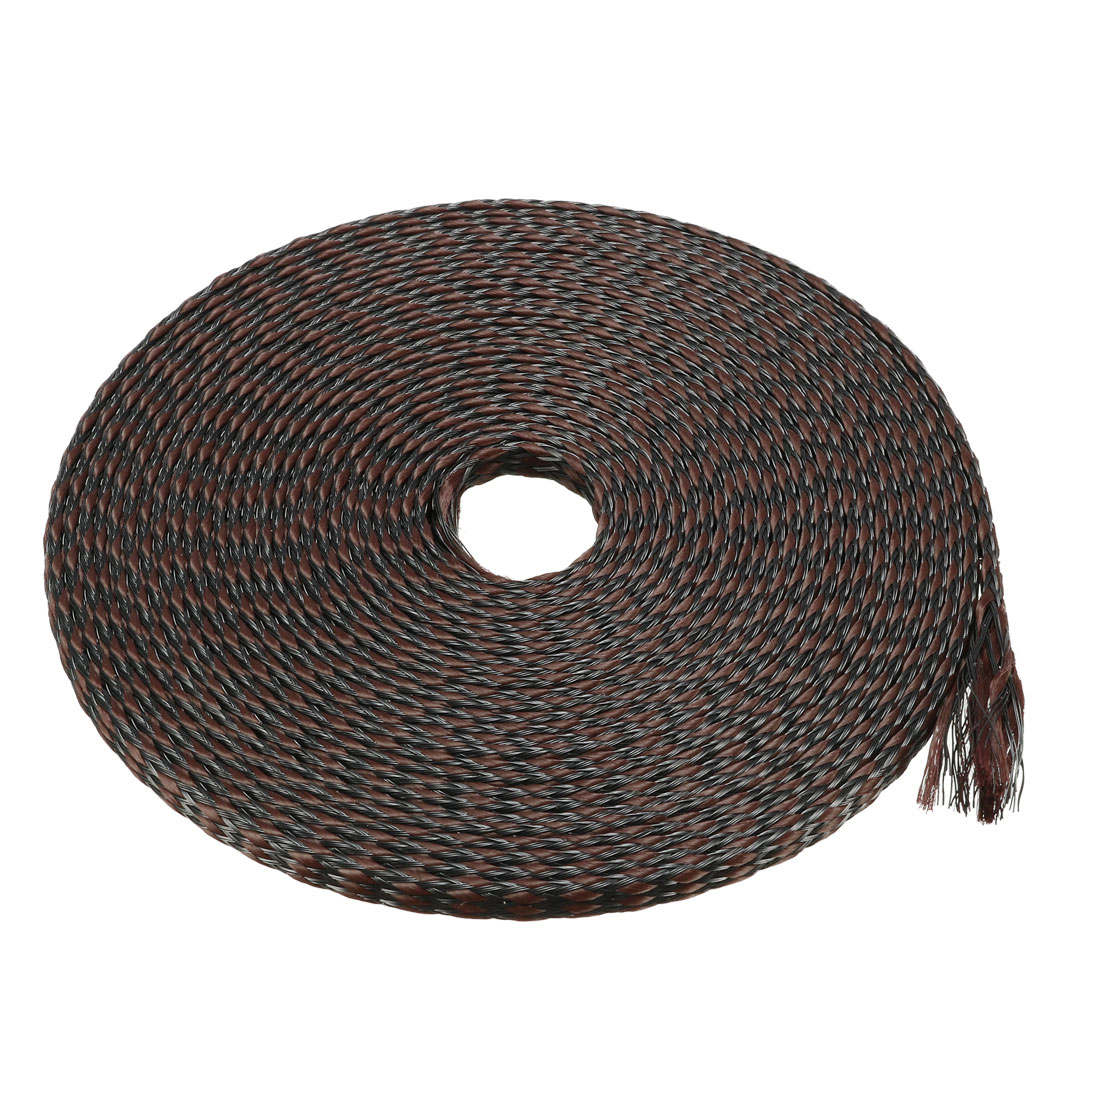 PET Braided Sleeving 16.4 Feet 5m Expandable Cable Wrap 4mm Diameter Wire Sheath Black Brown